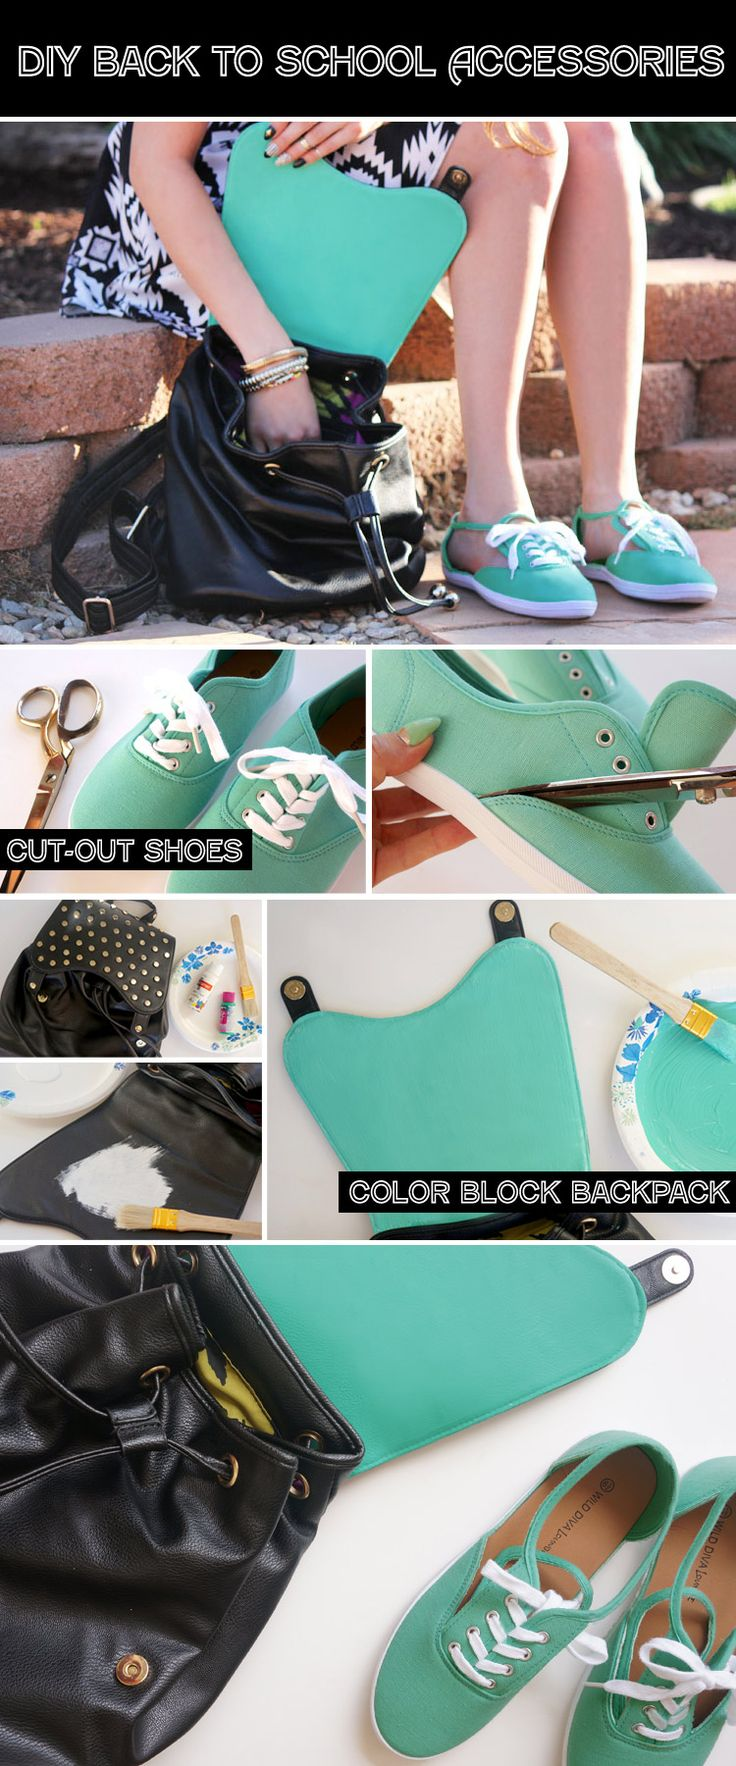 DIY Back to School Accessories — love the idea of painting the inside of the bag flap